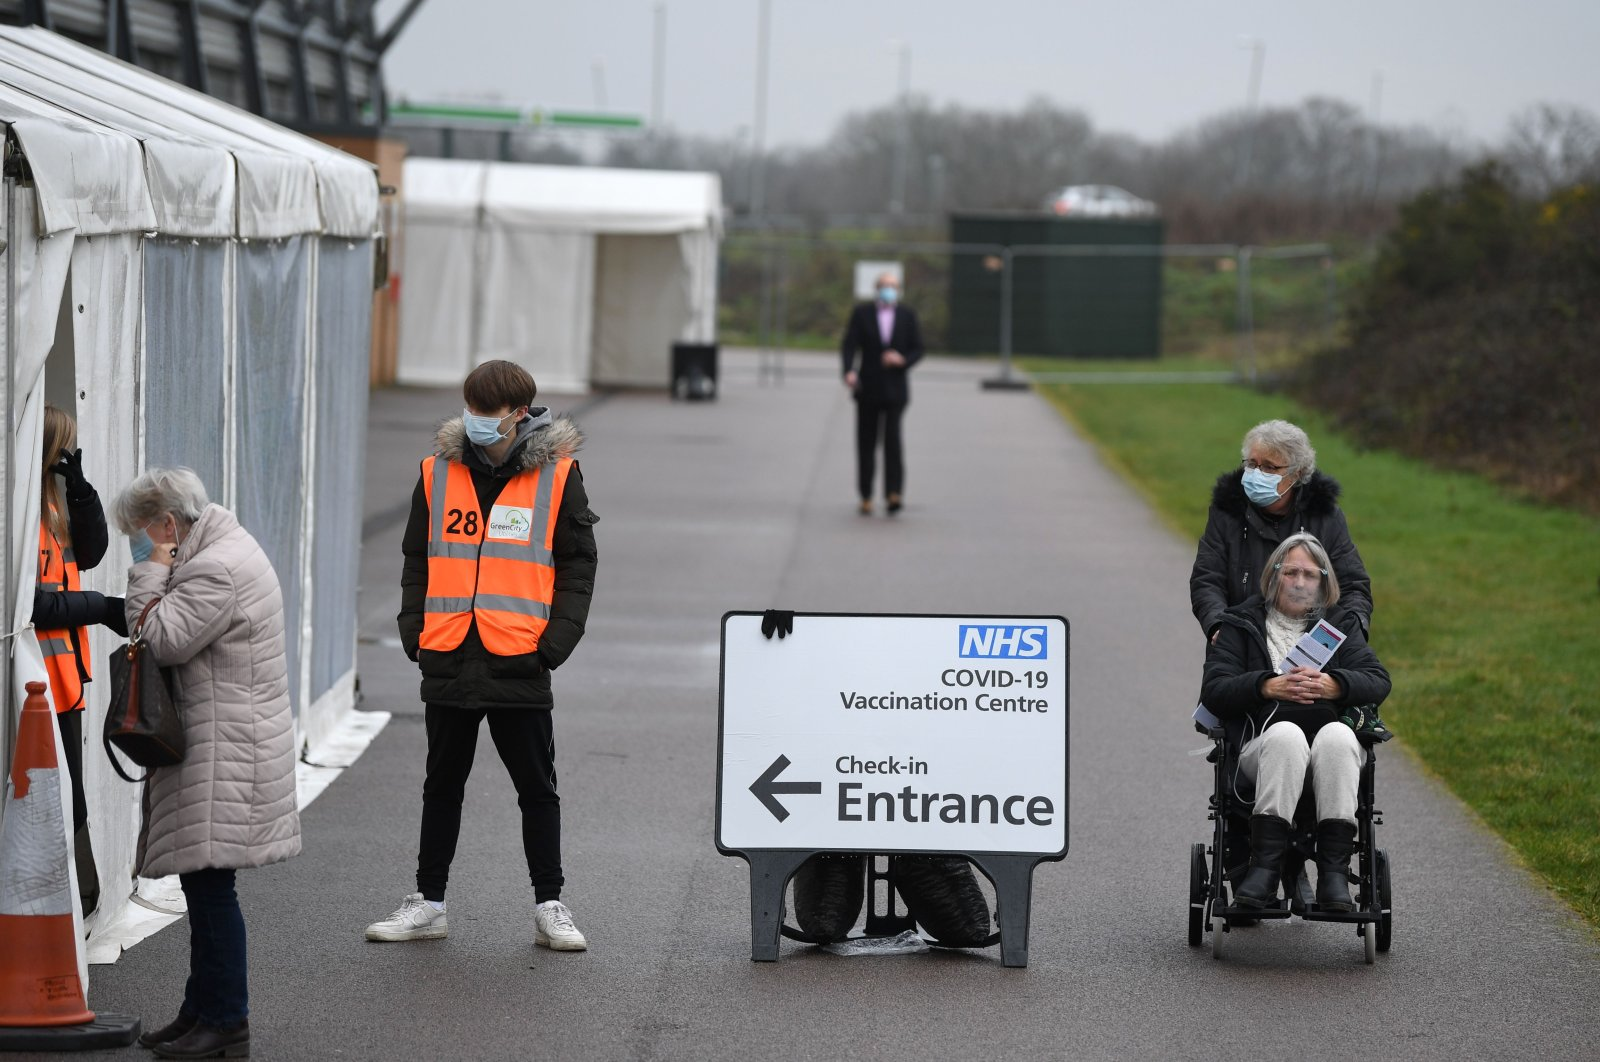 Volunteers assist a woman (L) as people who received a COVID-19 vaccine leave a temporary vaccination hub set up at the Colchester Community Stadium in Colchester, Essex, southeast England, Feb. 6, 2021. (AFP Photo)